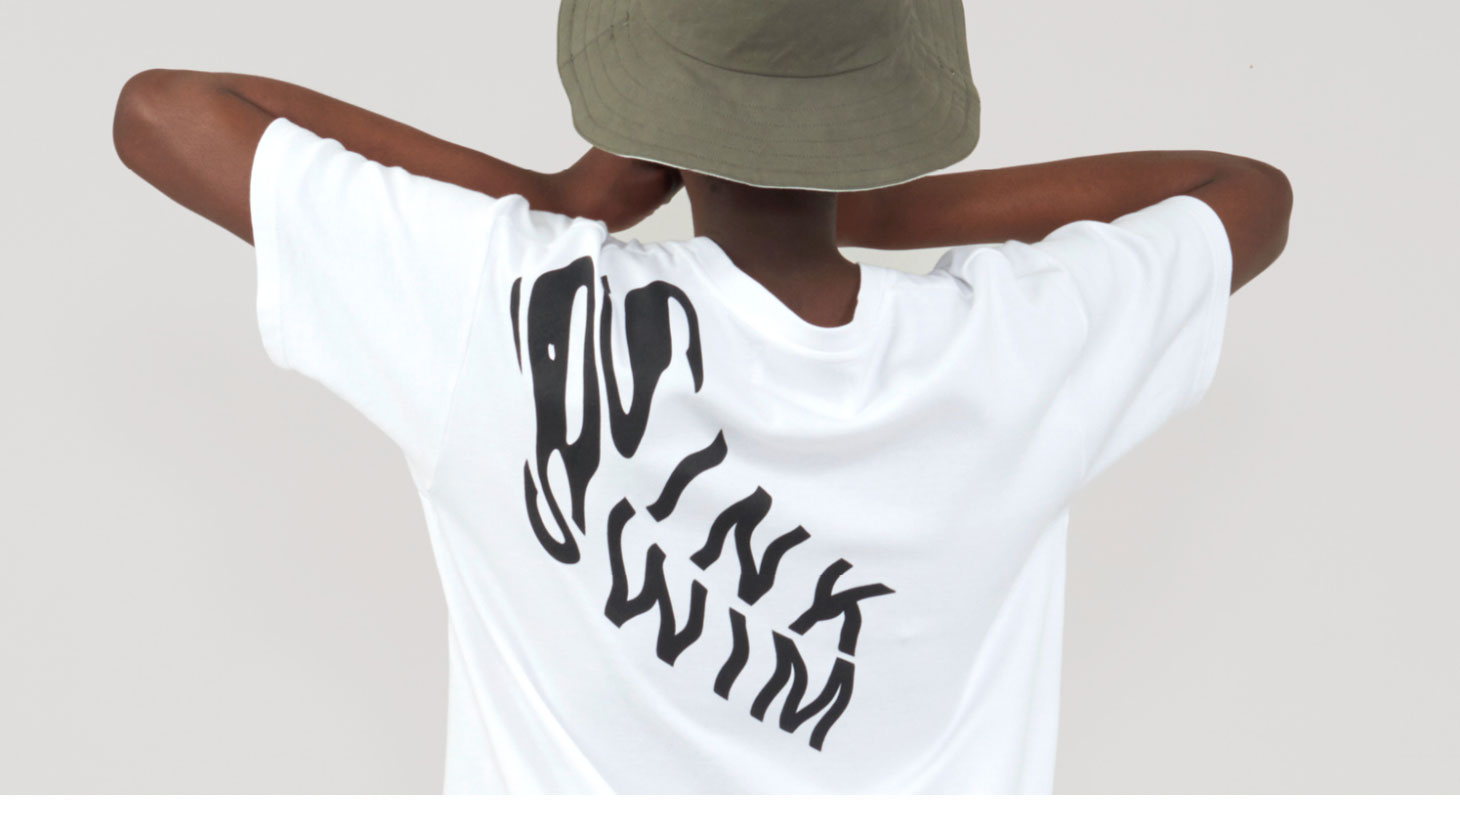 766aca4de6bc 8 Graphic T-Shirts You Need This Summer 2019 | OPUMO